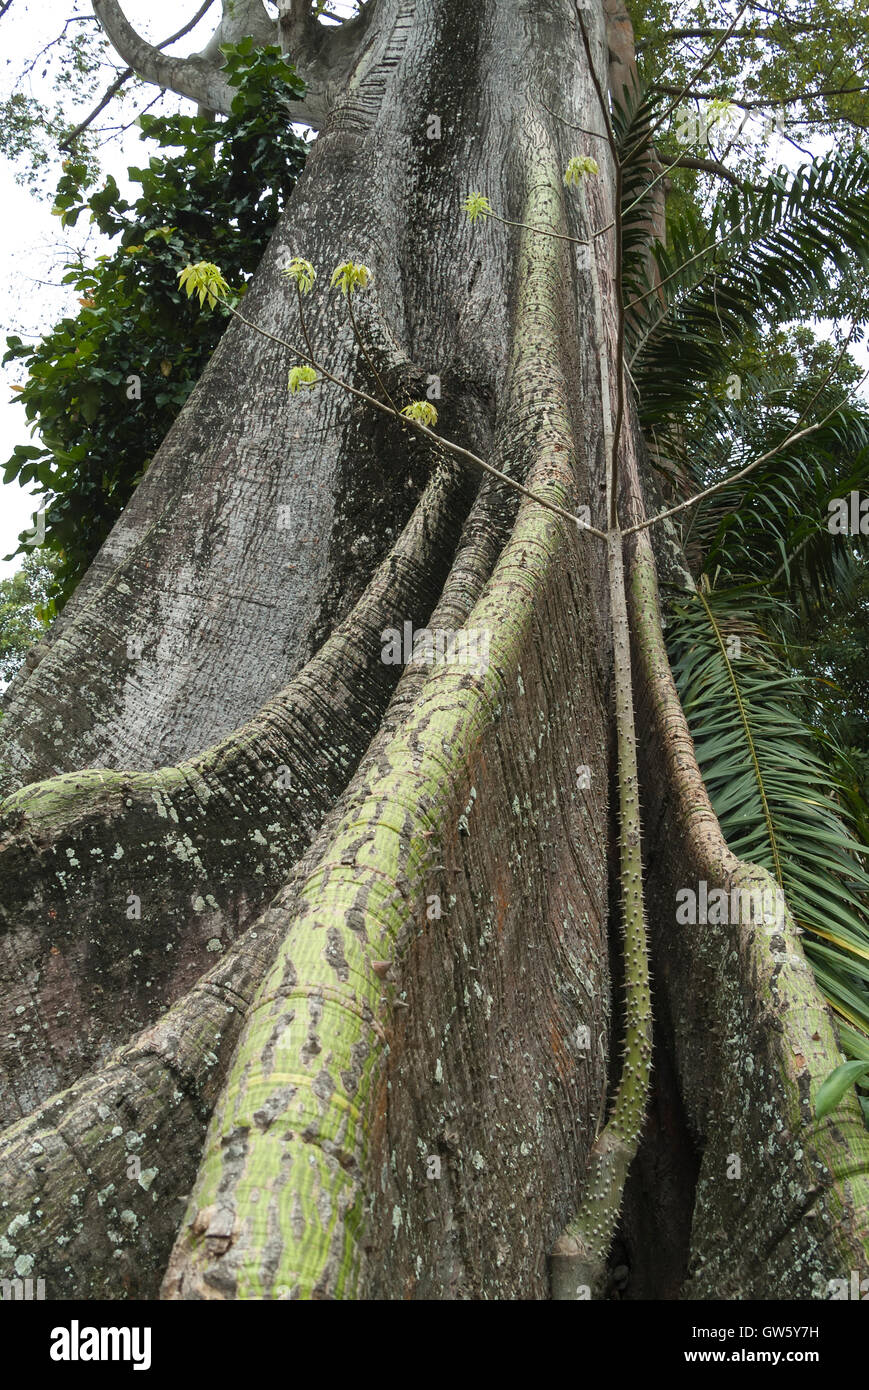 Tree with strong roots. São Tomé e Príncipe - Stock Image